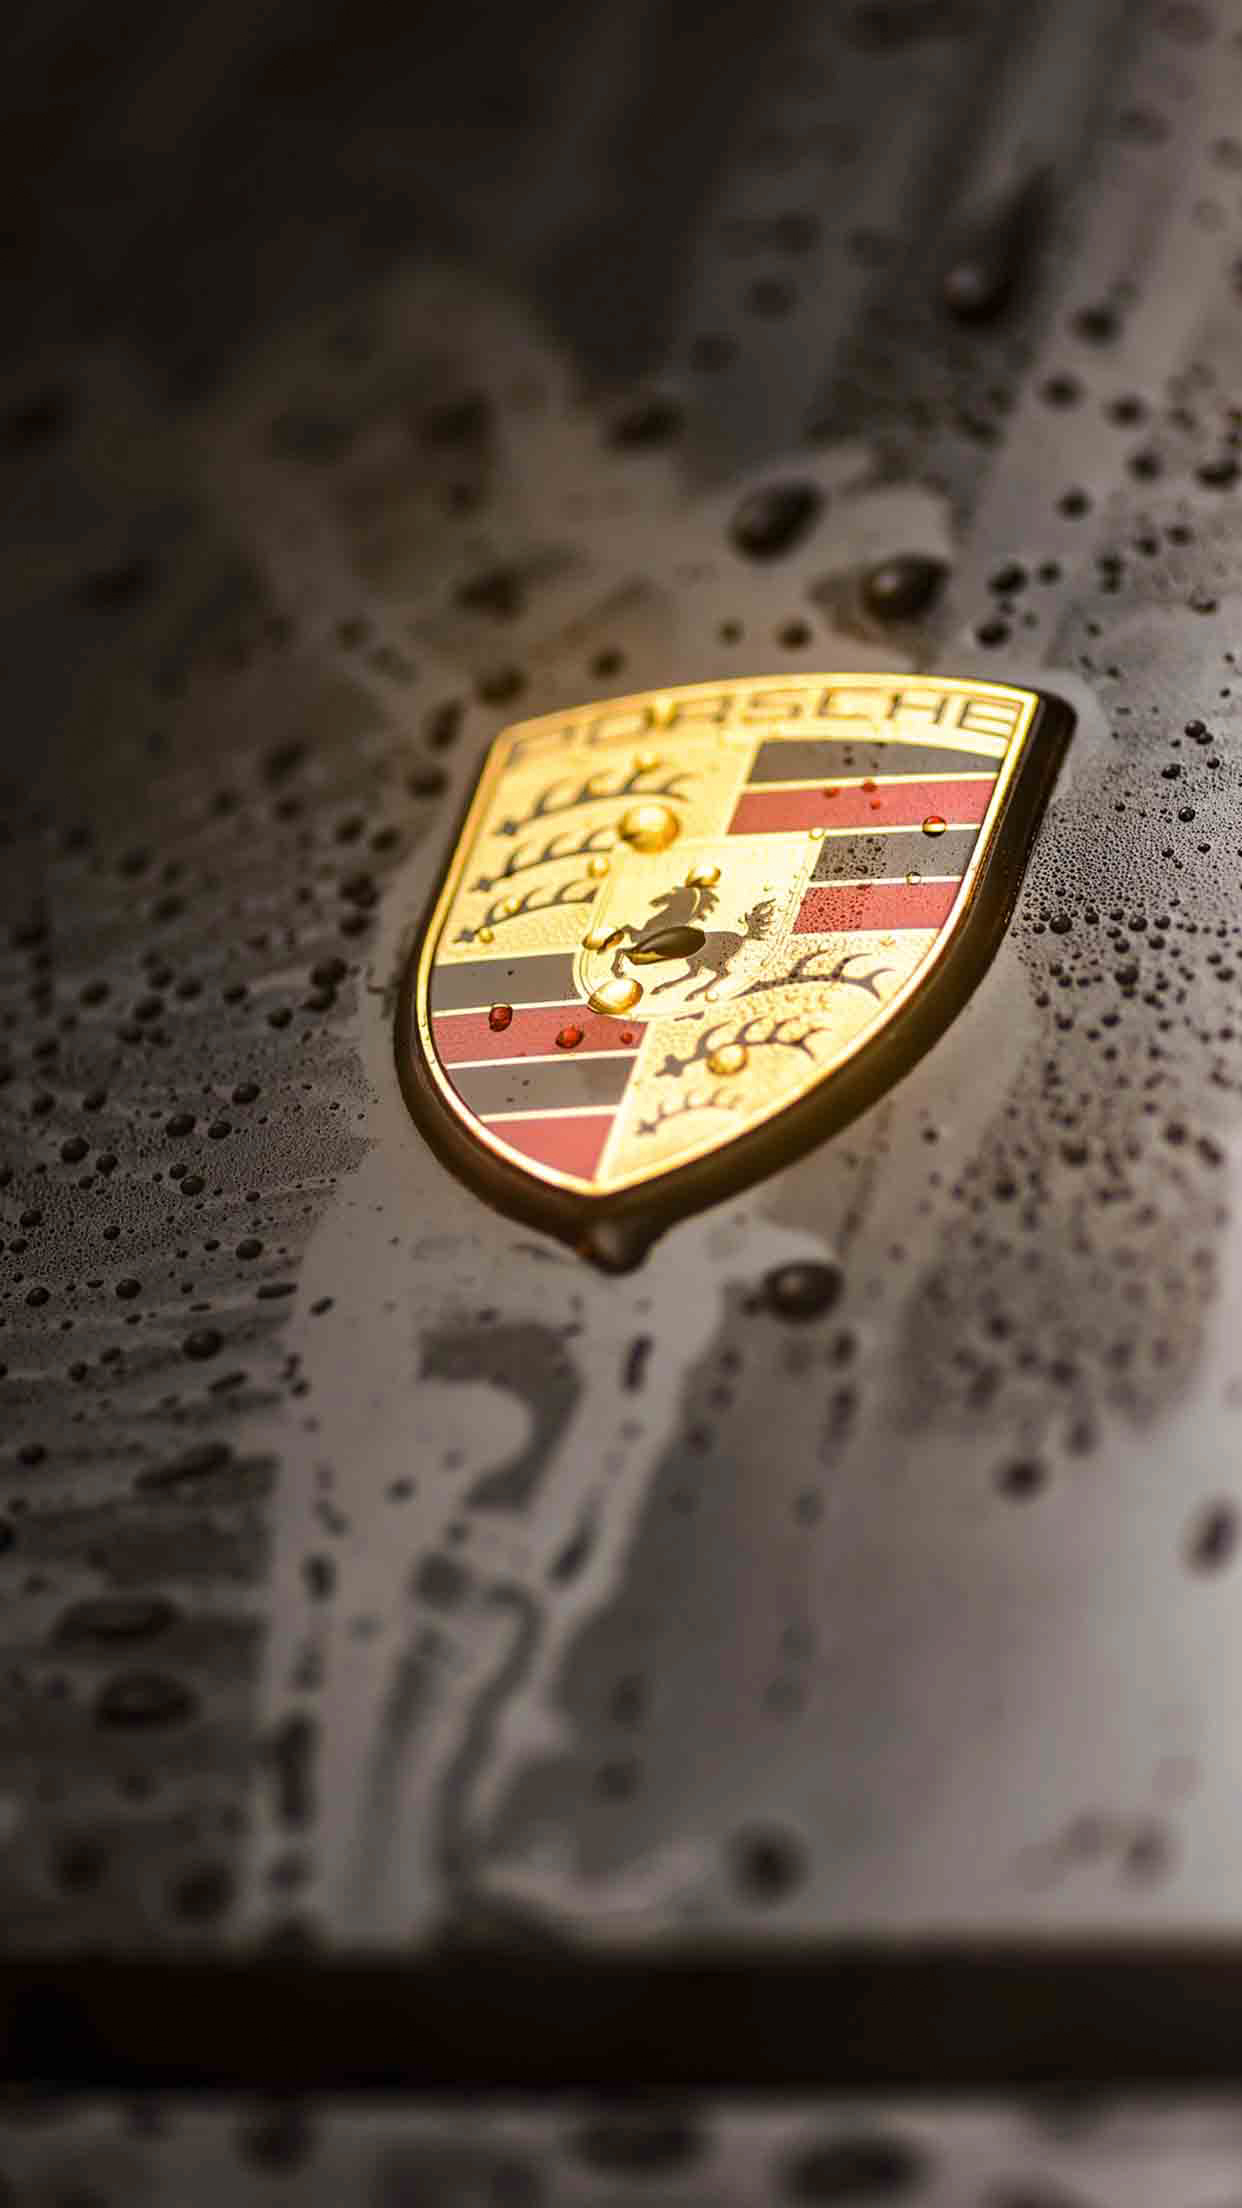 Porsche logo 4K Wallpaper